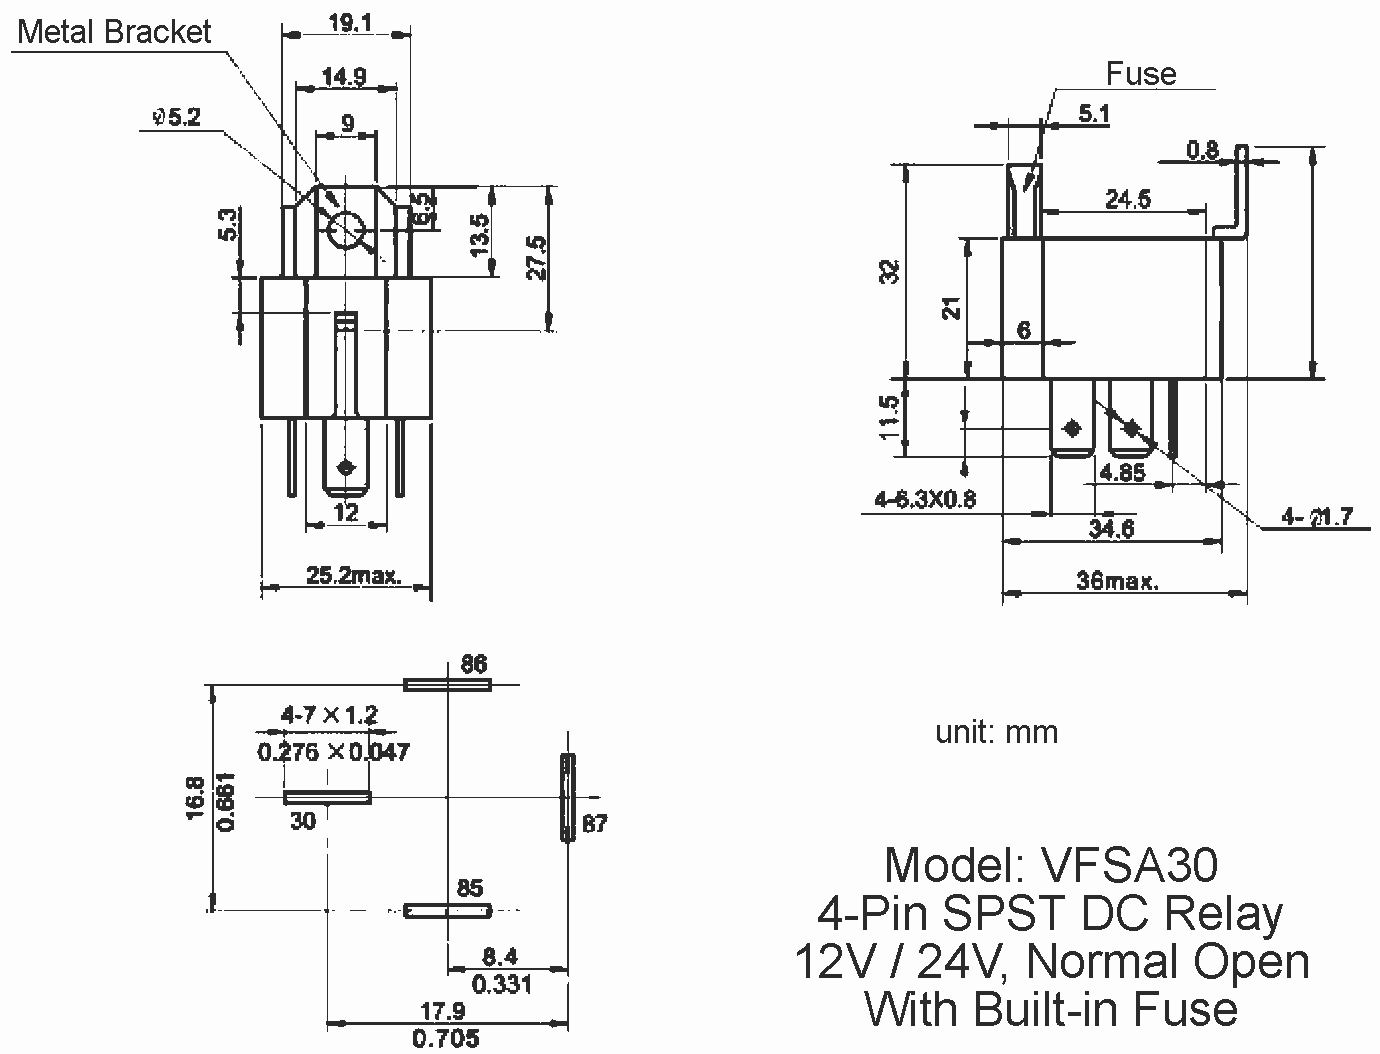 12V / 24V Automotive DC Relay with 30A fuse, model VFSA30